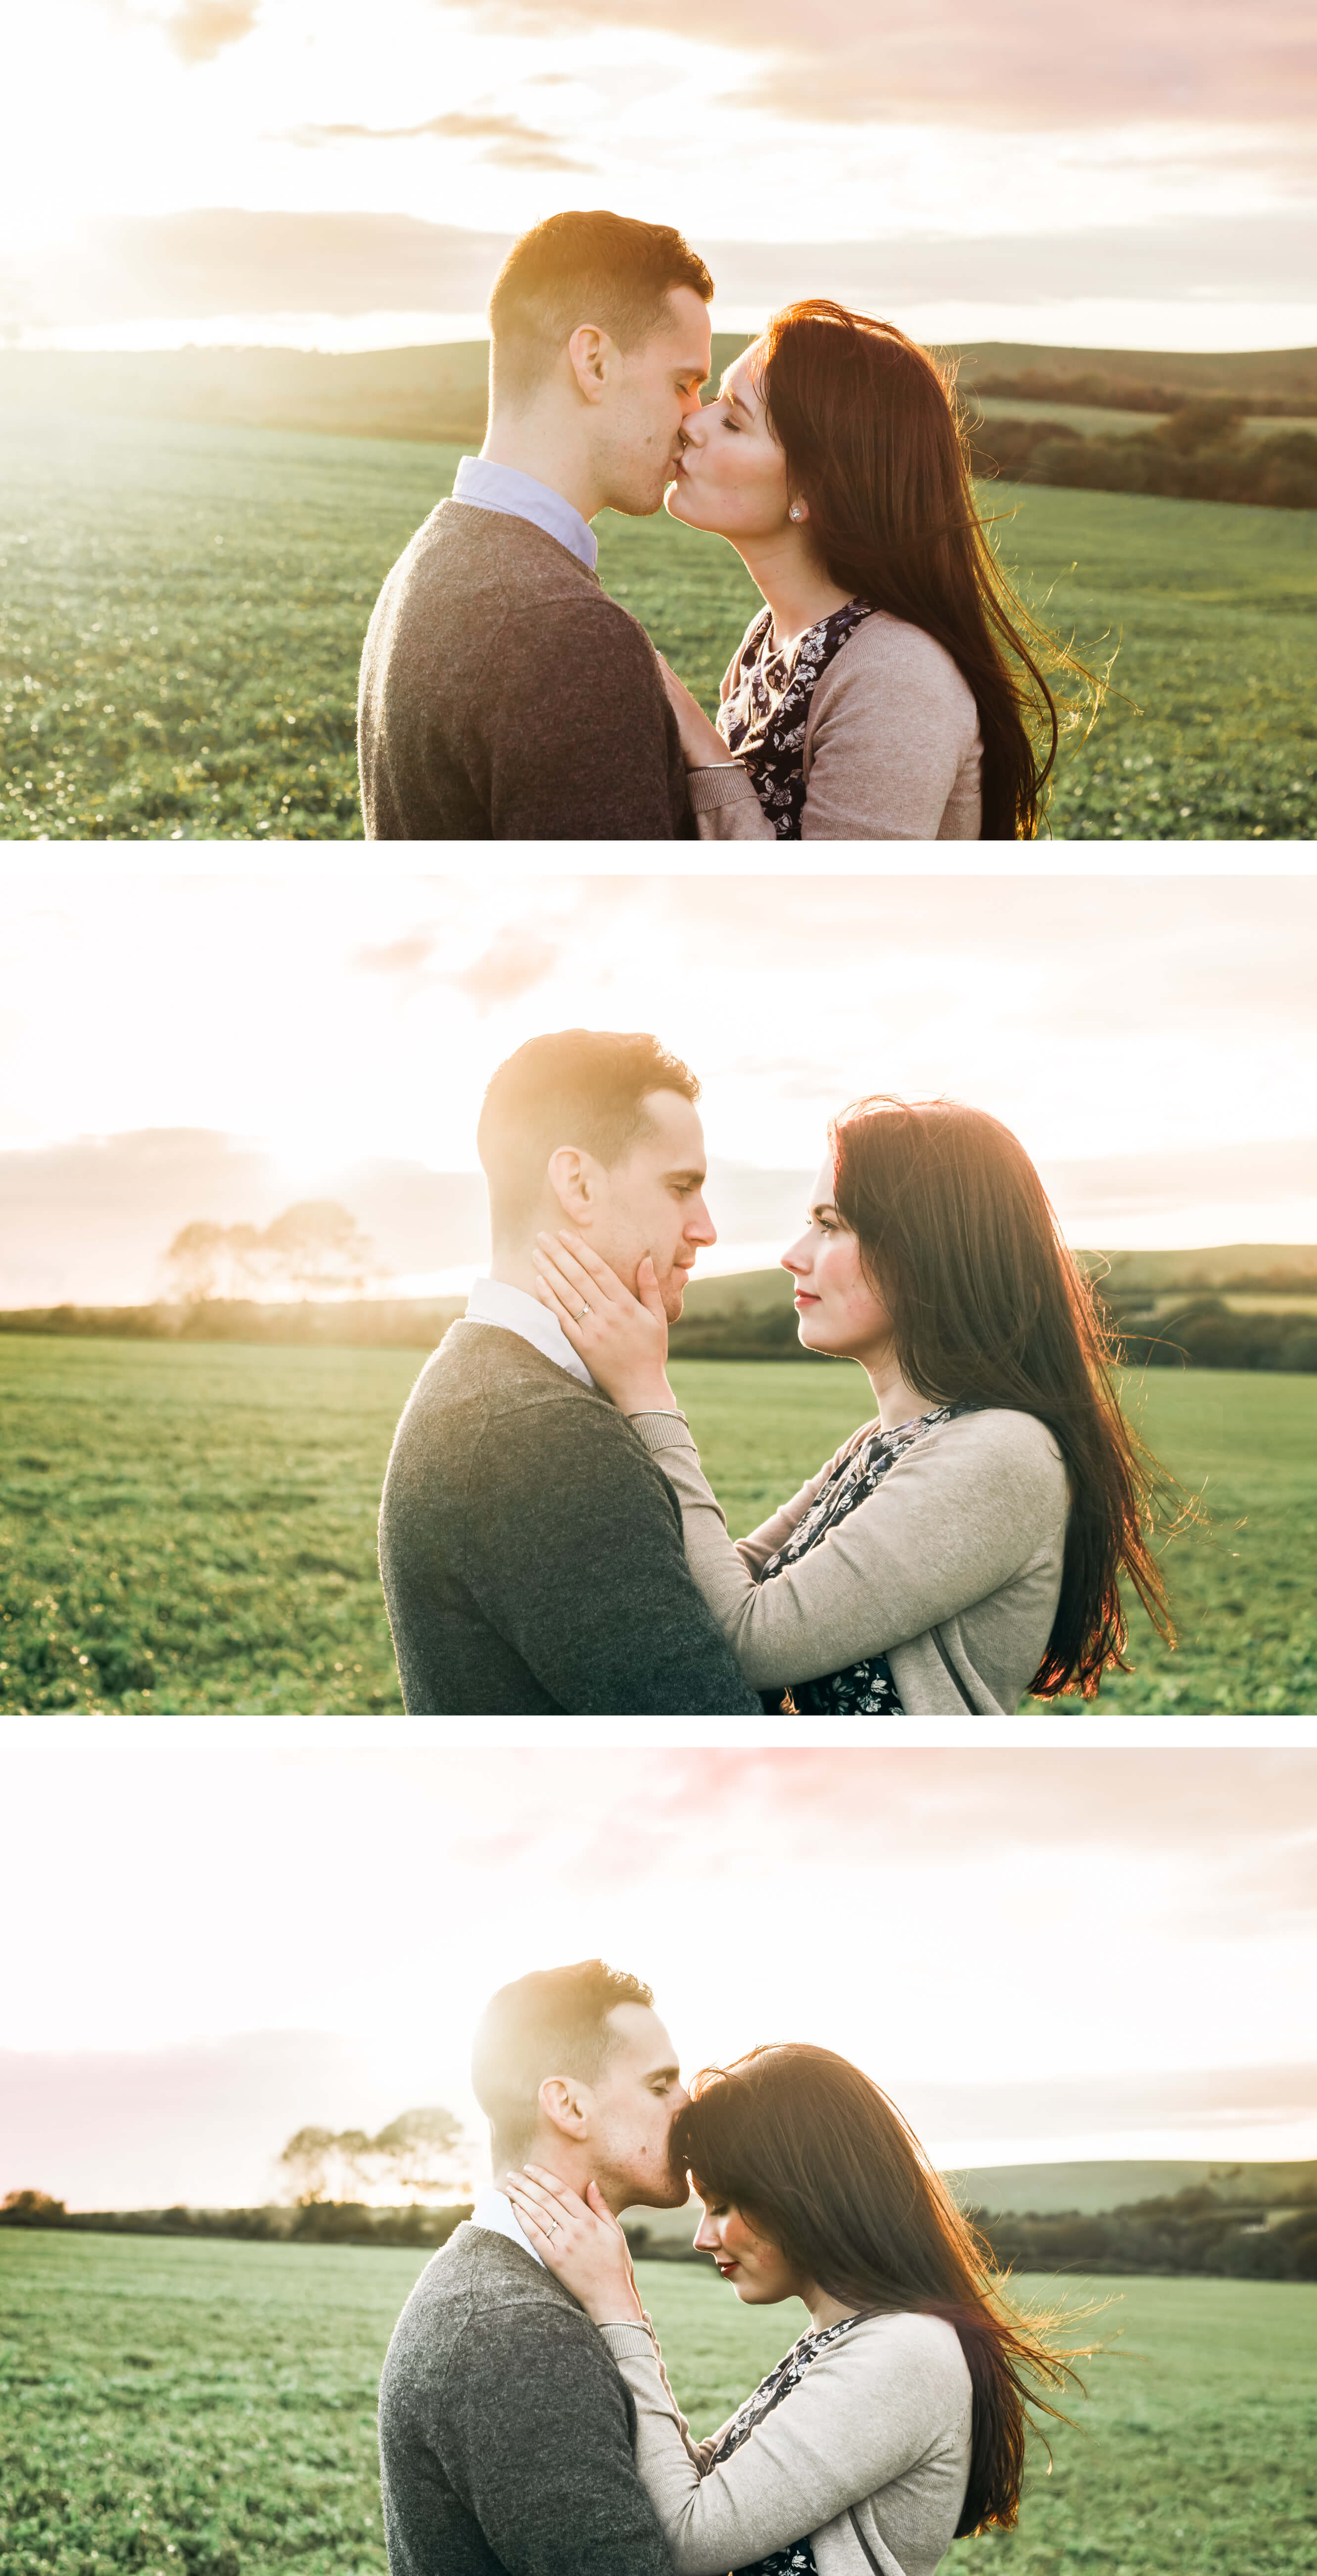 Brighton Engagement Photographer _ South Downs Engagement Photography in West Sussex